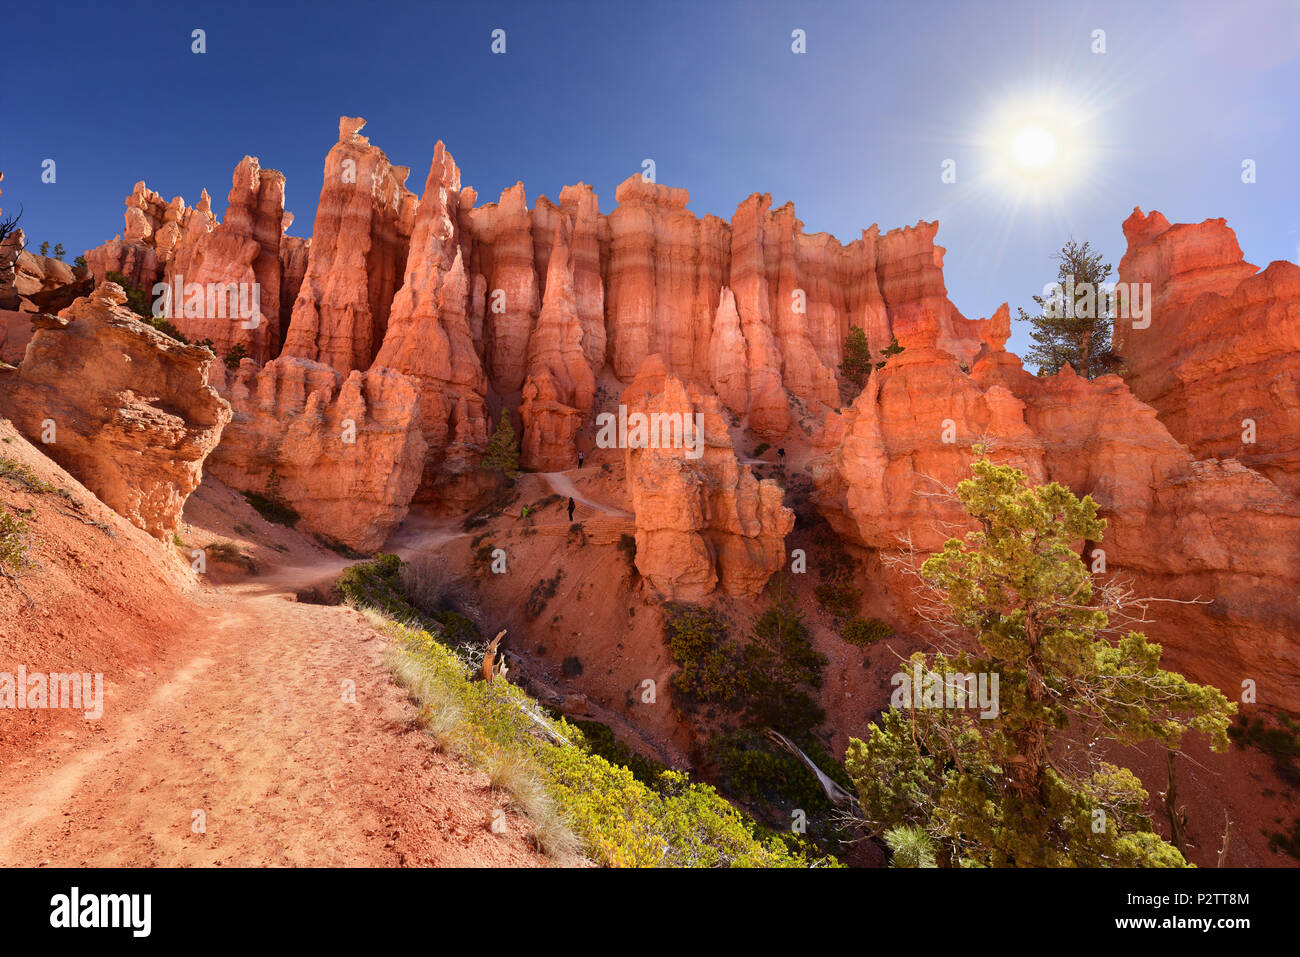 A trail among the manicured hoodoos in Bryce Canyon National Park, Utah USA Stock Photo